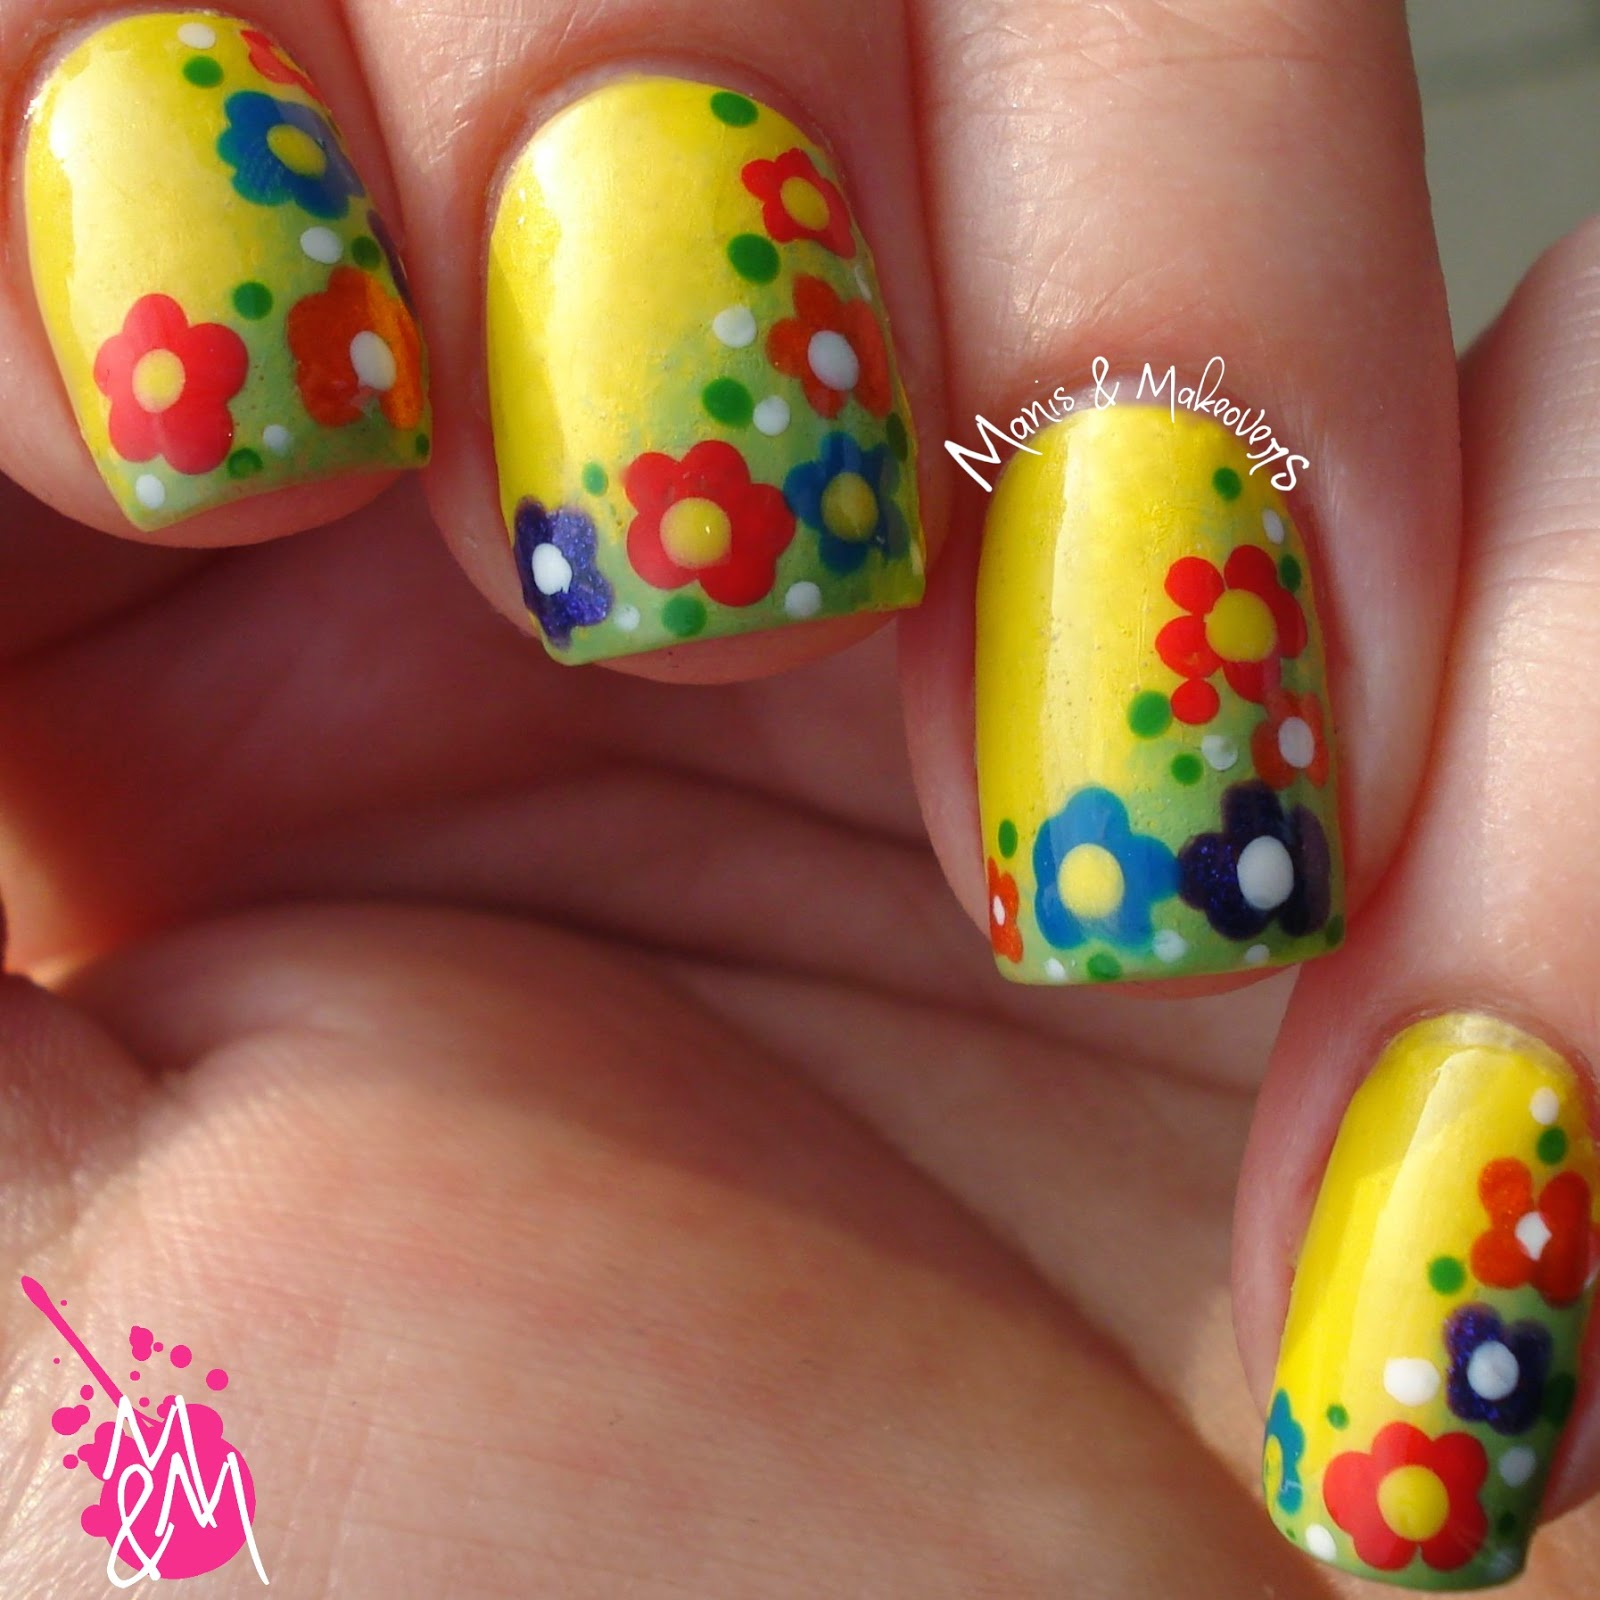 Southern Sparkle Nail Art: Twinsie Thursday: Spring Flowers